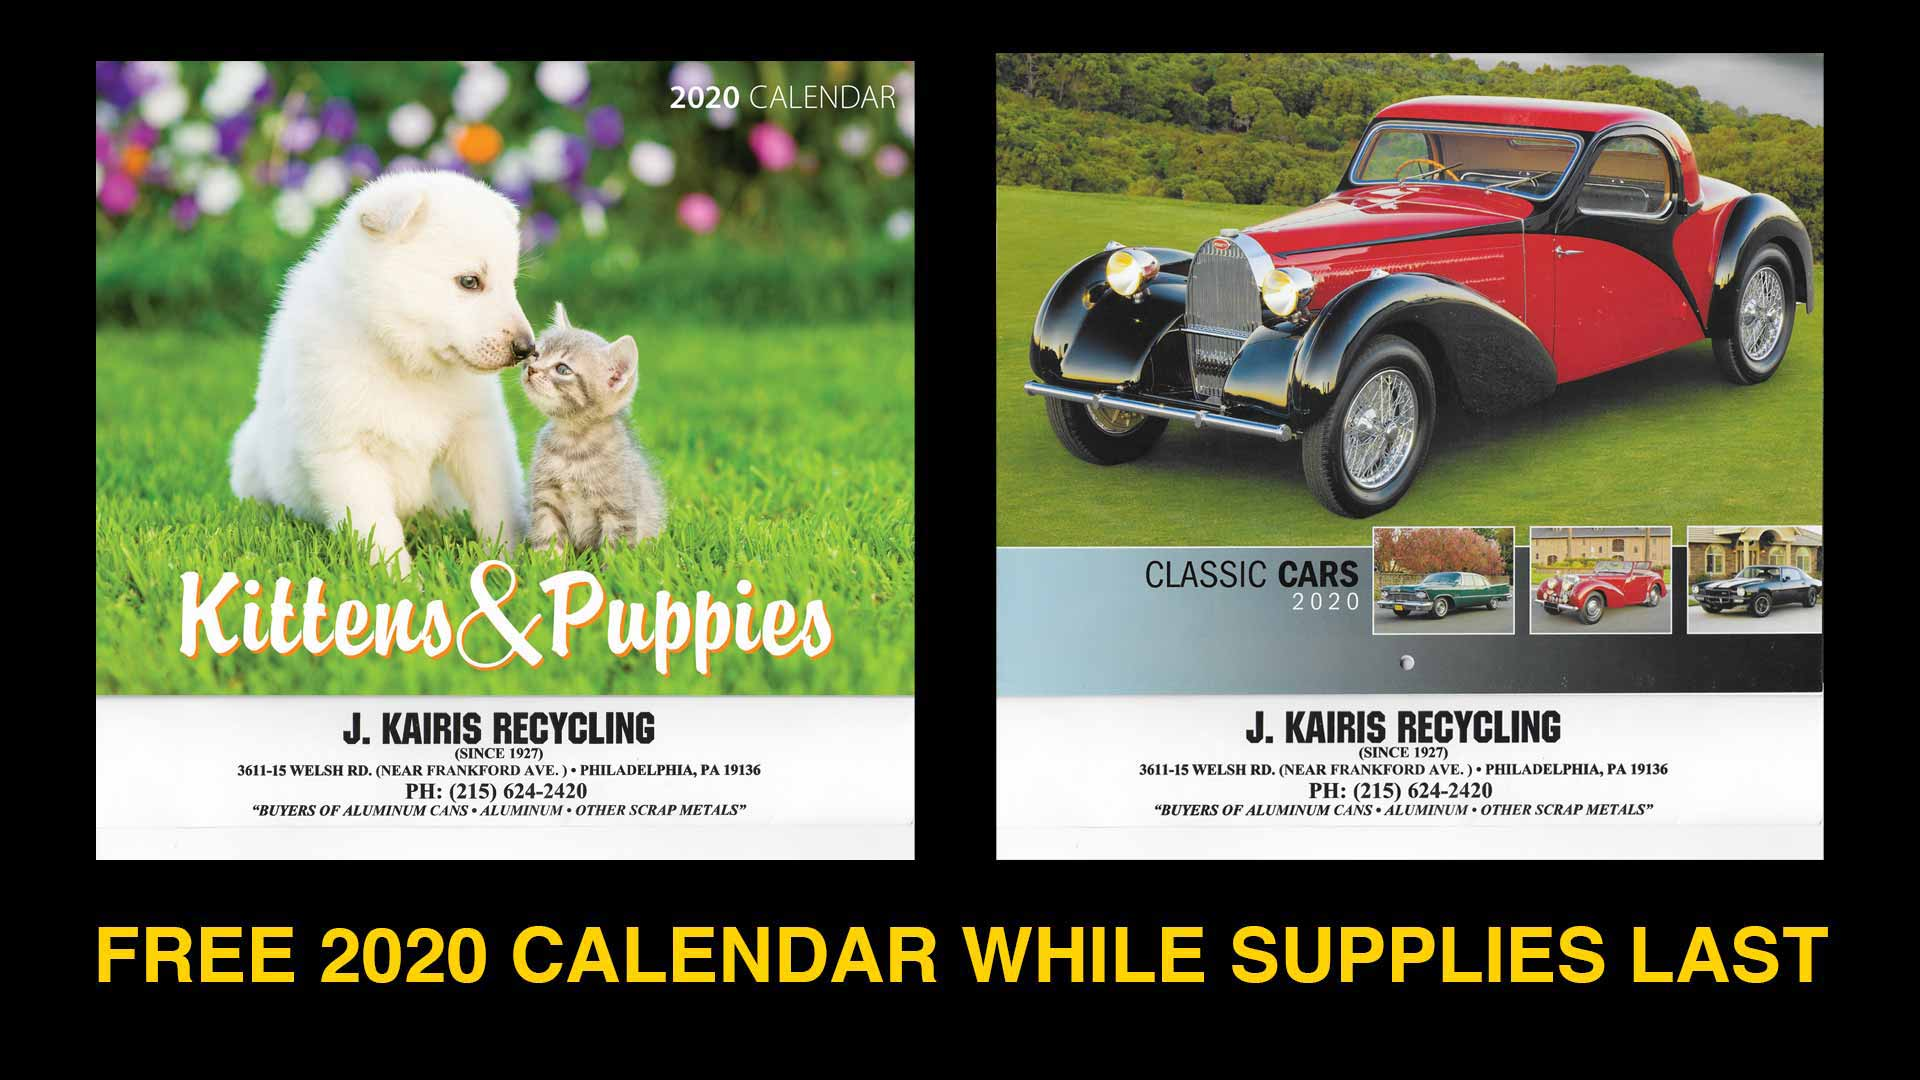 FREE 20202 Calendar while supplies last